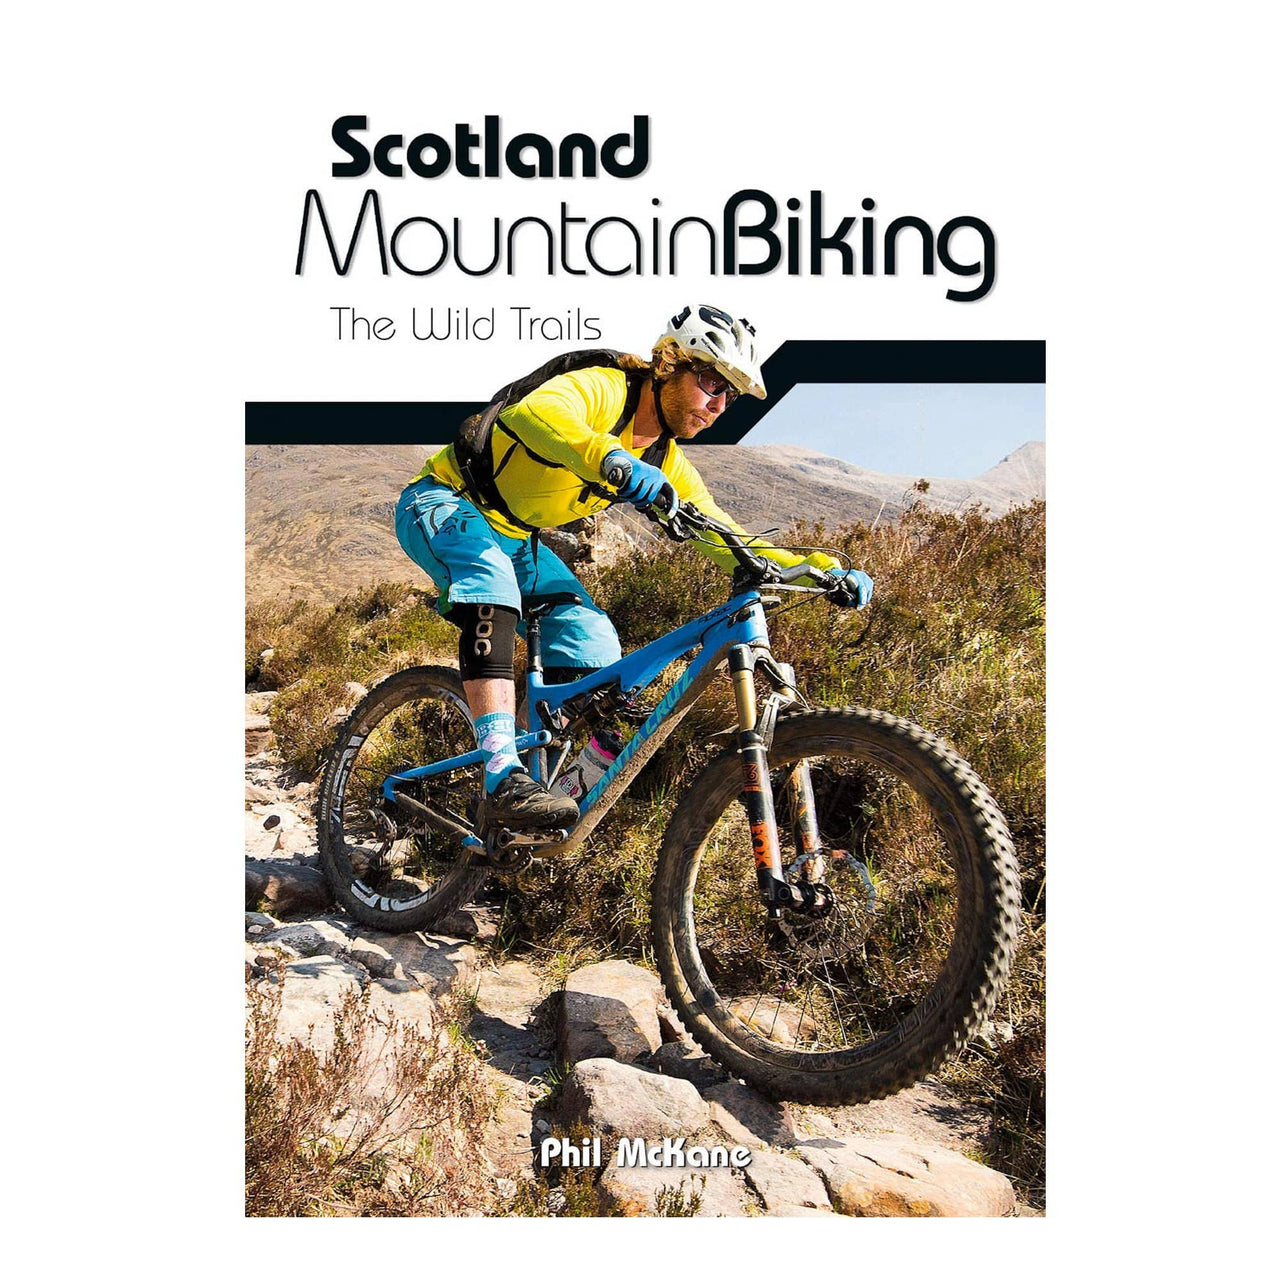 Scotland Mountain Biking; The Wild Trails